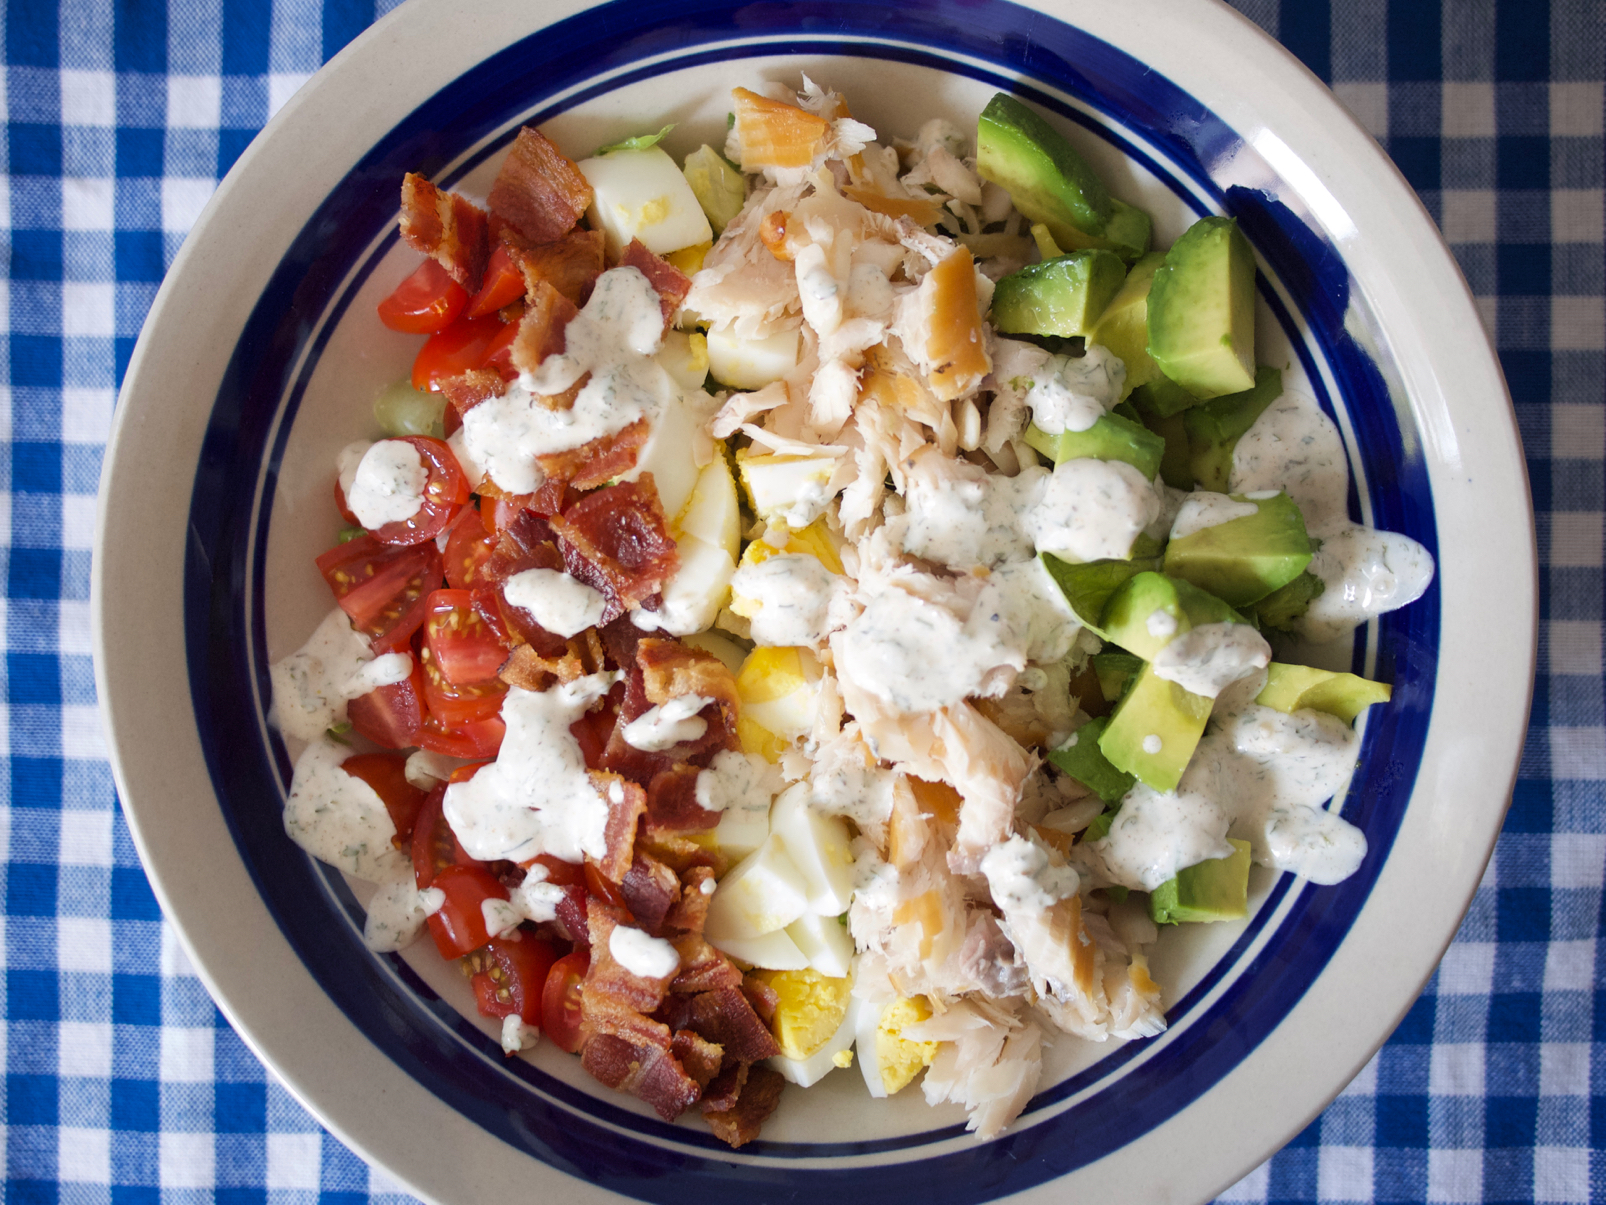 Chesapeake Cobb Salad